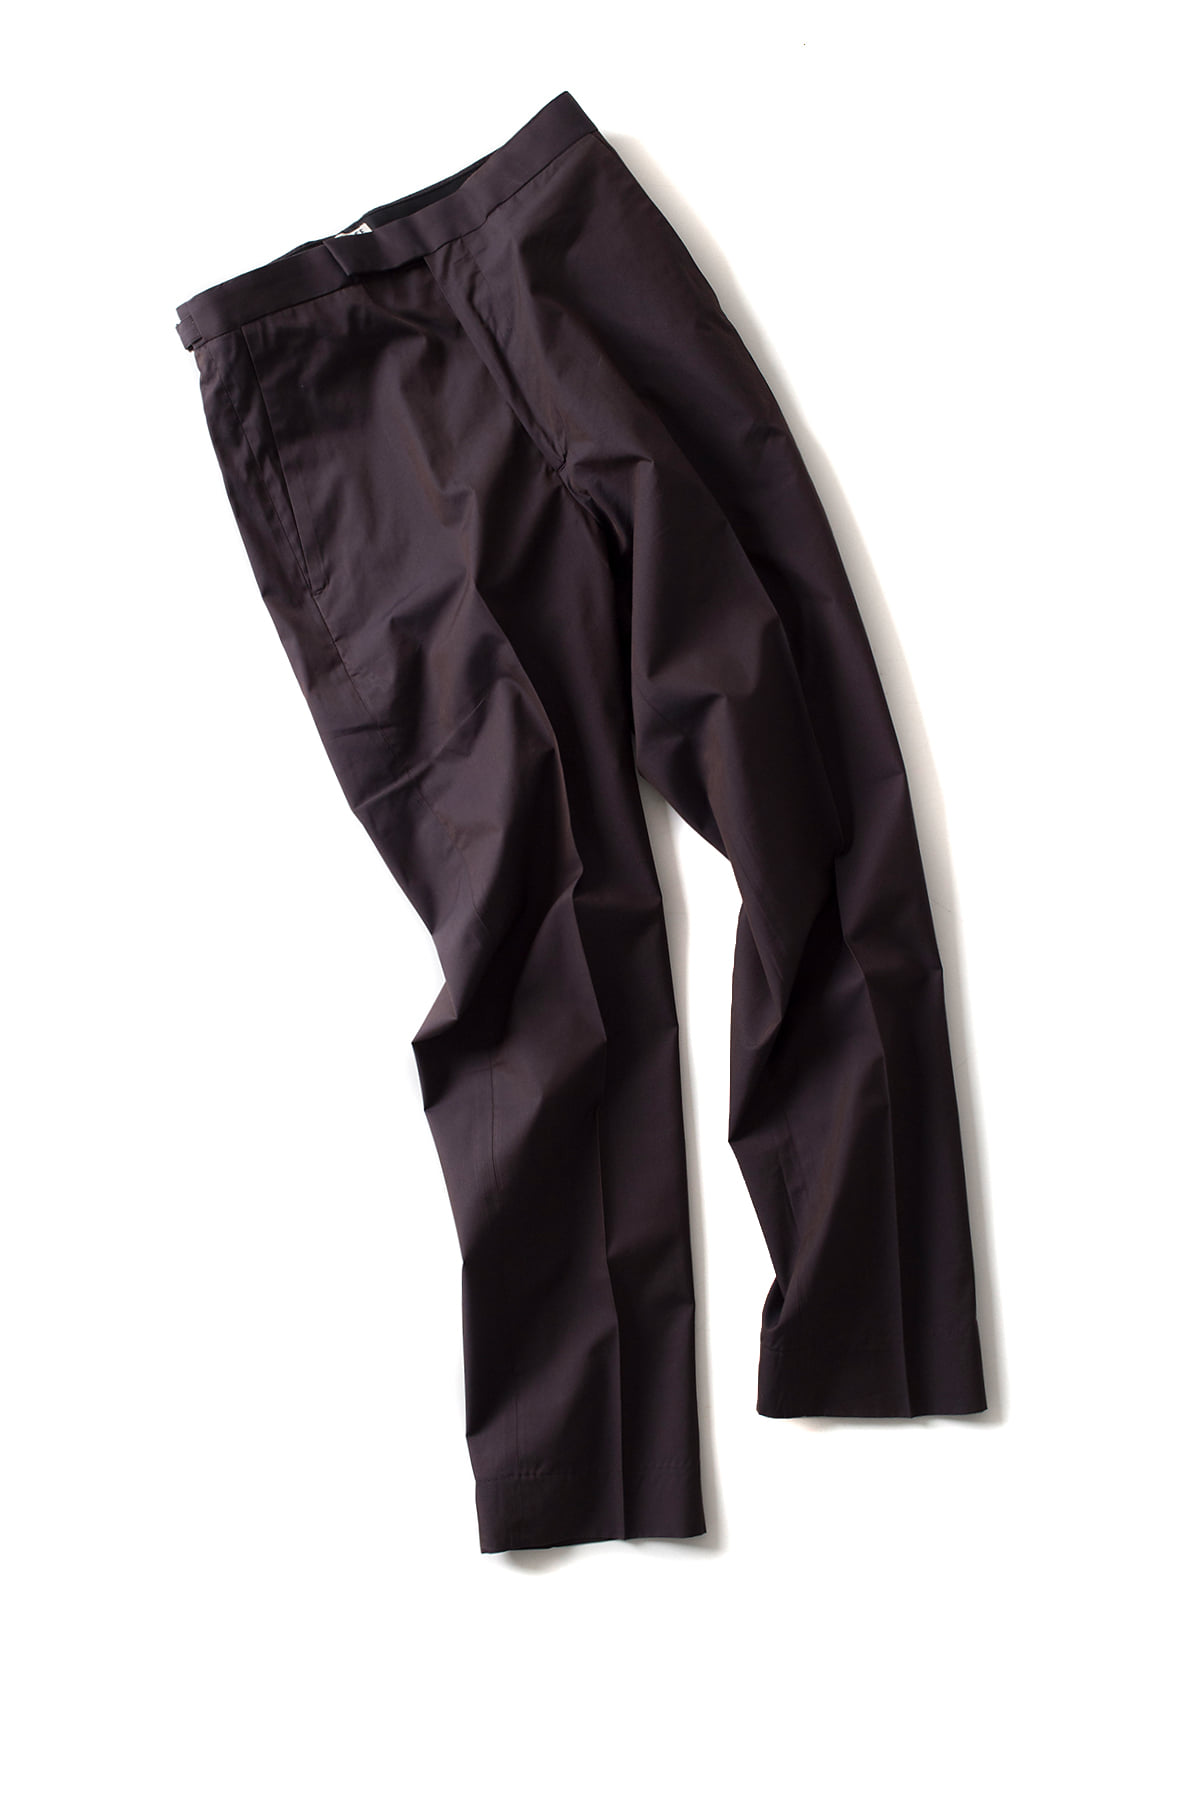 Auralee : Finx Silk Chambray Slacks (Brown)